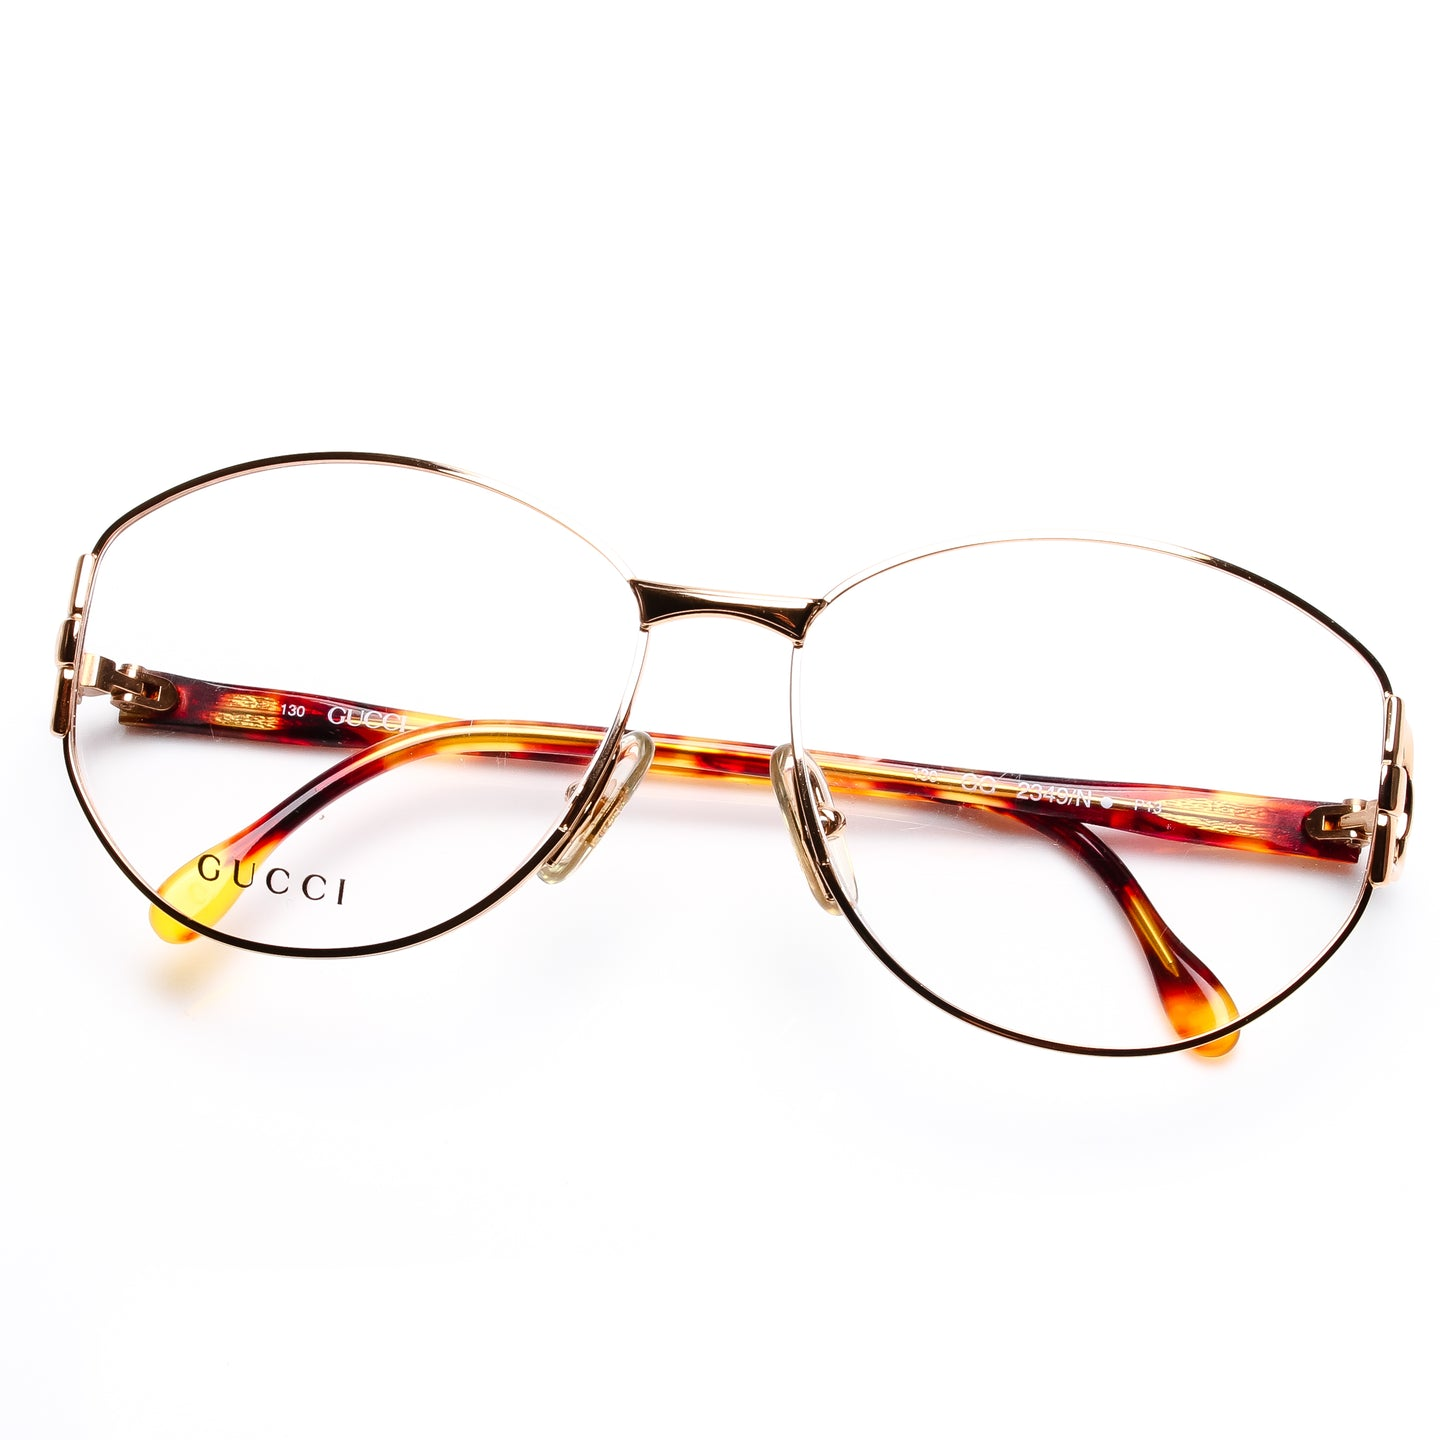 Gucci 2349/N P13 Thumbnail, Gucci , glasses frames, eyeglasses online, eyeglass frames, mens glasses, womens glasses, buy glasses online, designer eyeglasses, vintage sunglasses, retro sunglasses, vintage glasses, sunglass, eyeglass, glasses, lens, vintage frames company, vf